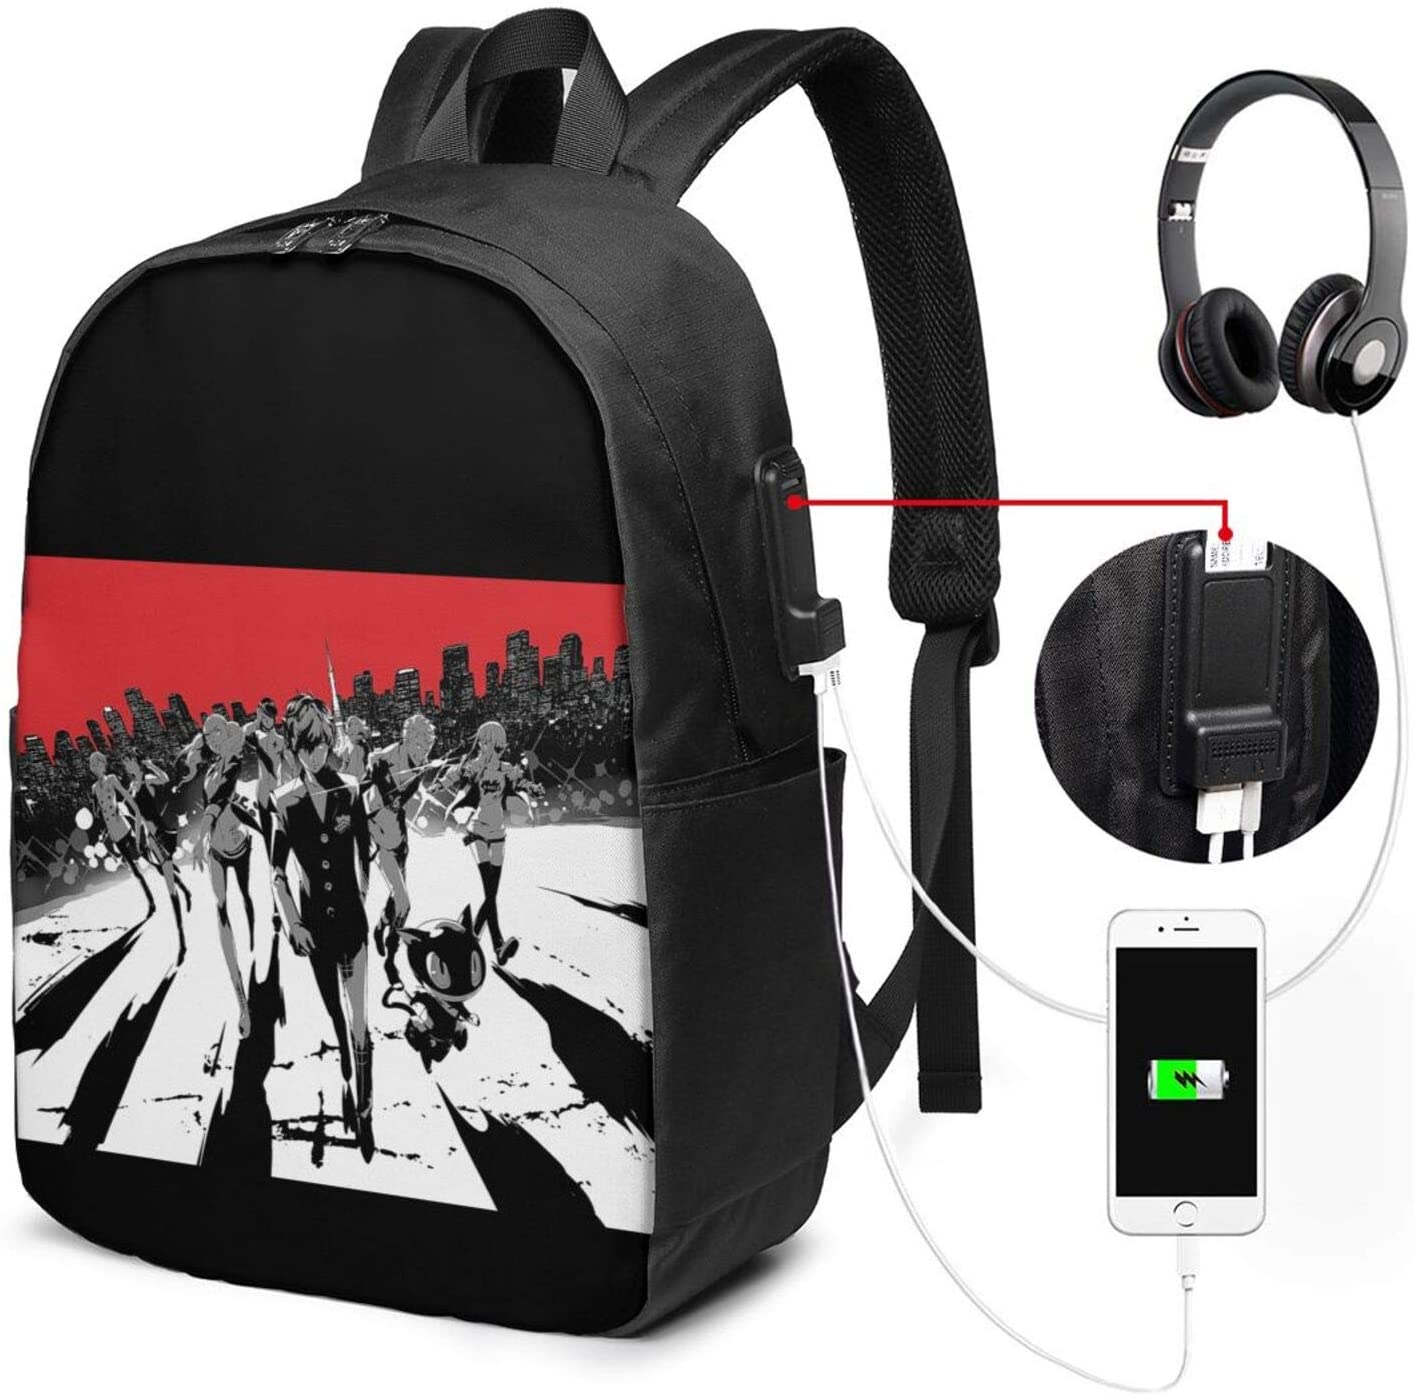 Persona 5 Fashion Outdoor Travel Durable USB Backpack for Unisex 17 in